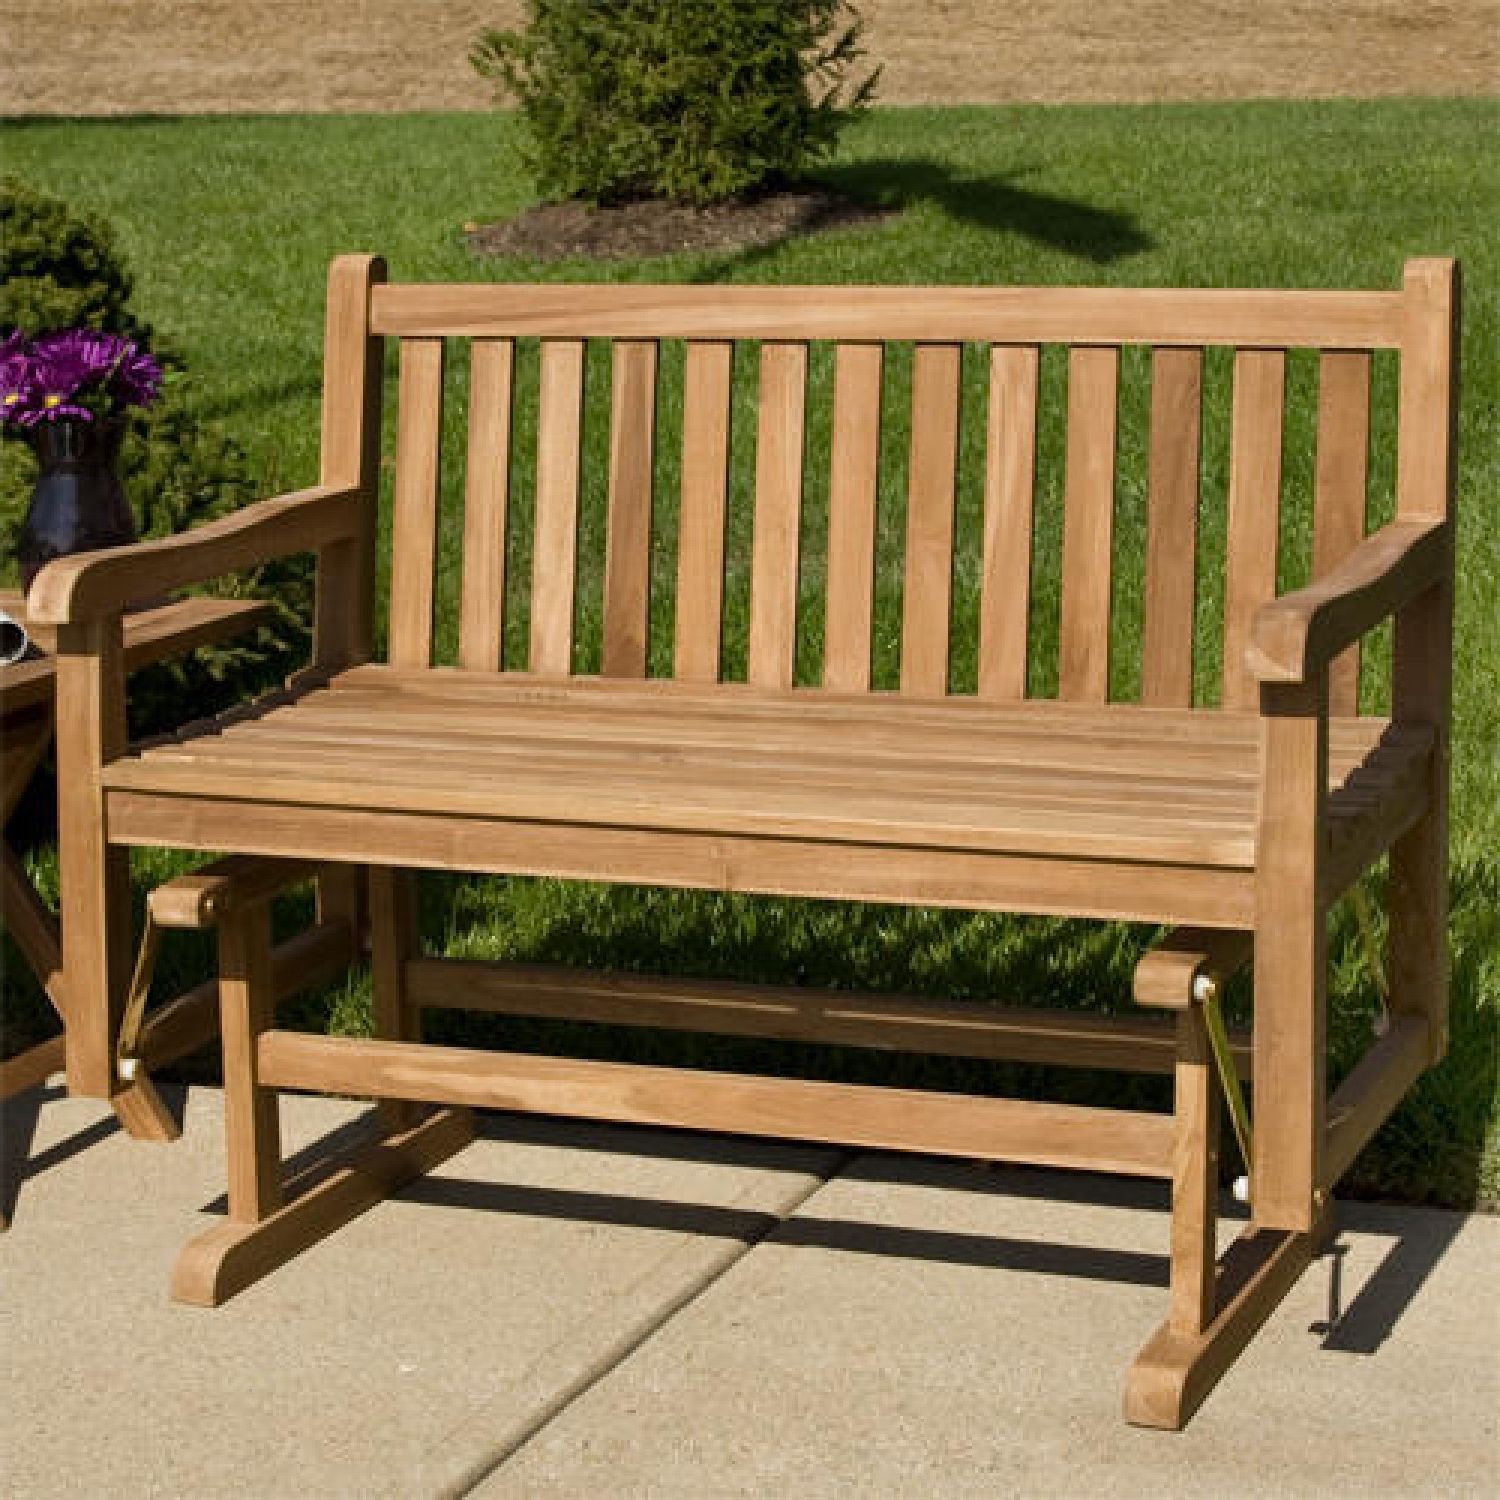 Current Teak Outdoor Glider Benches Throughout Build Outdoor Glider Bench : Outdoor Decorations – What Is (View 8 of 25)